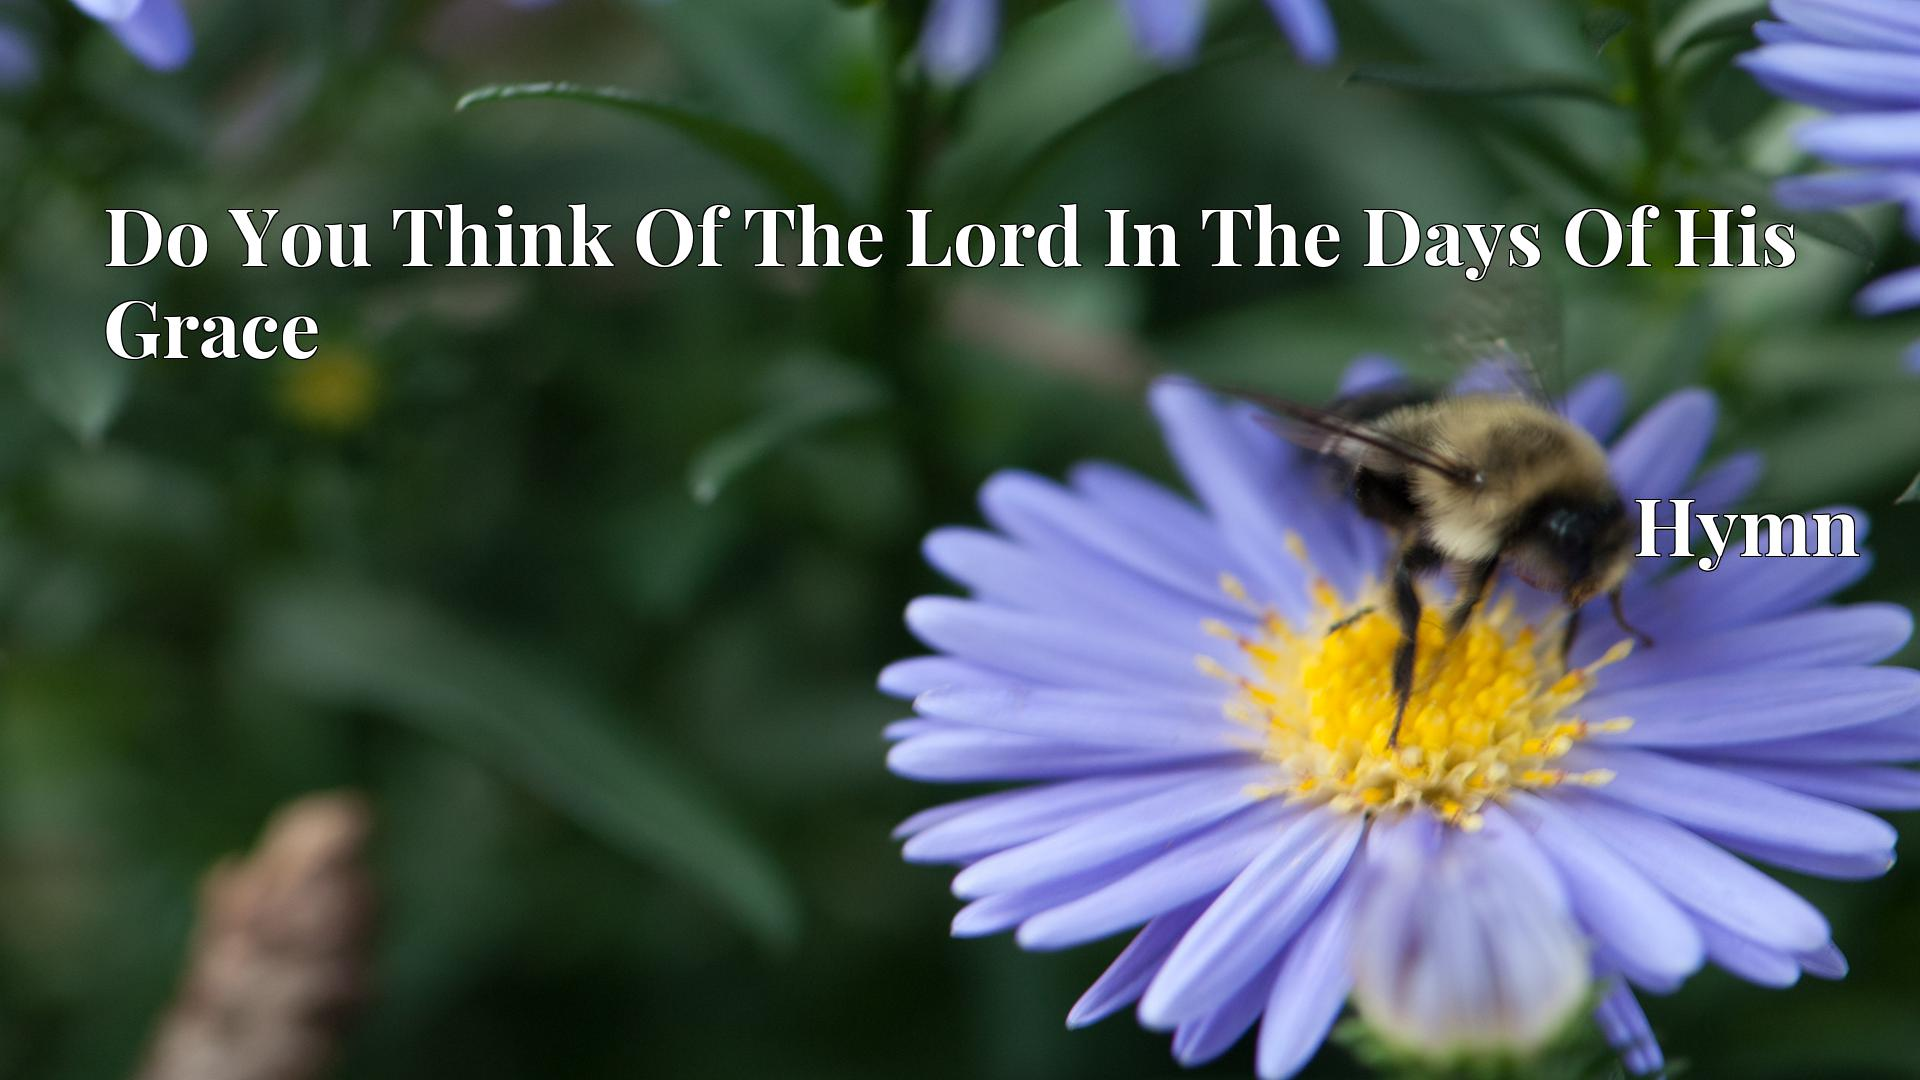 Do You Think Of The Lord In The Days Of His Grace - Hymn